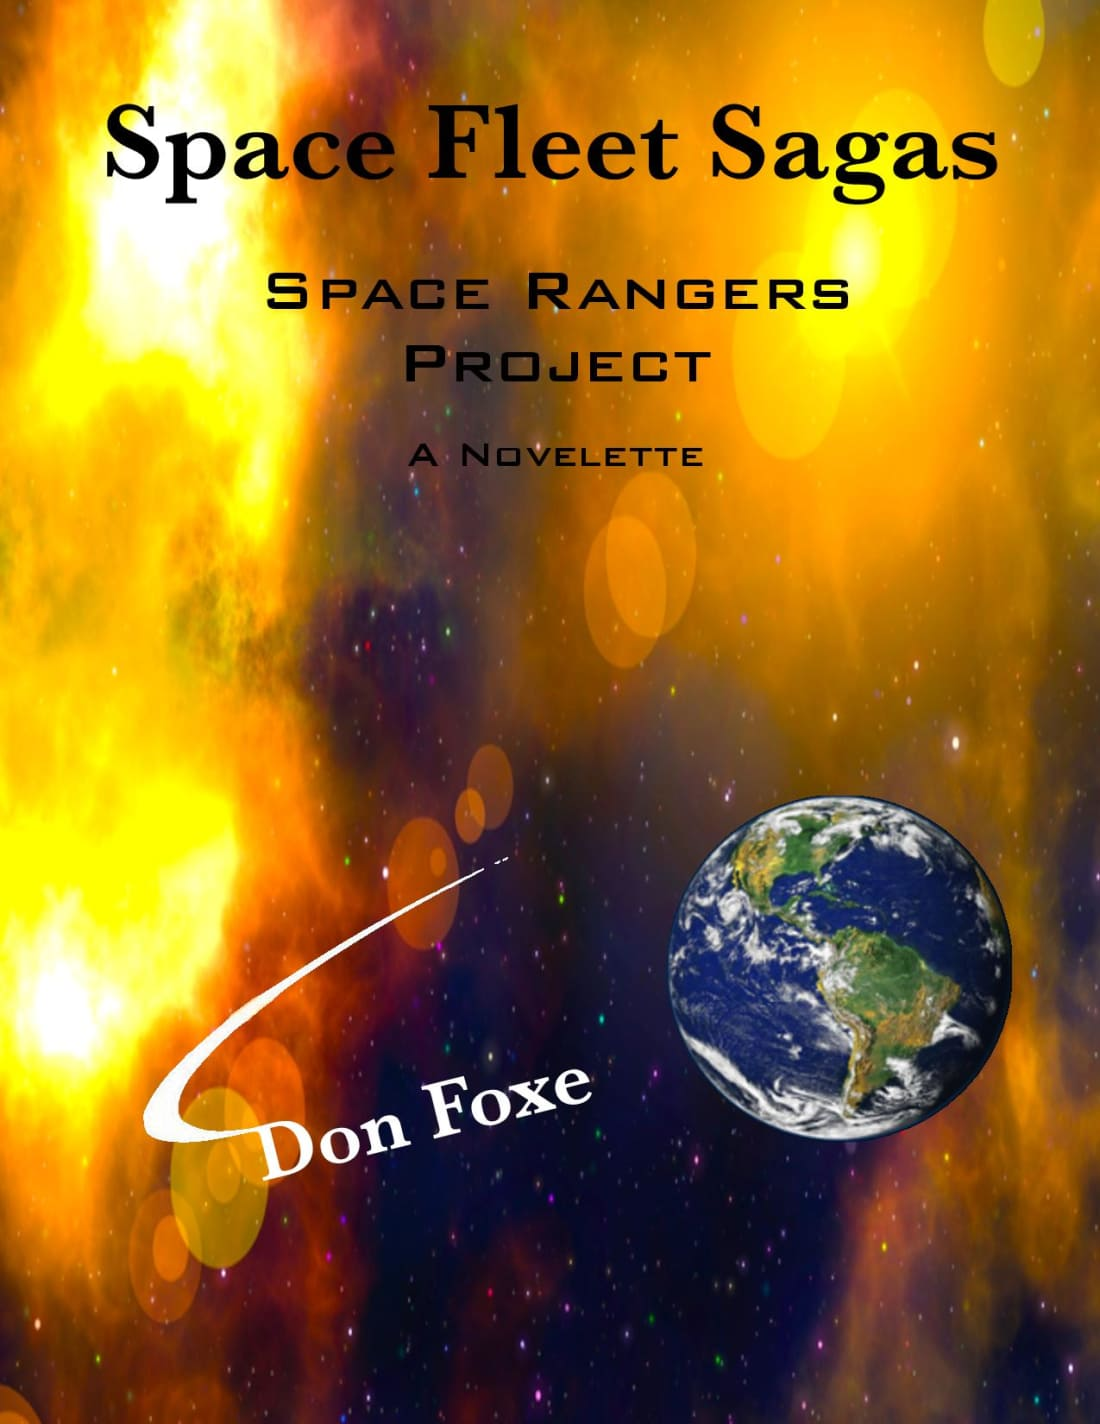 Backstory for the Novel CONTACT AND CONFLICT by Don Foxe. Space Fleet Sagas - Science Fiction Series